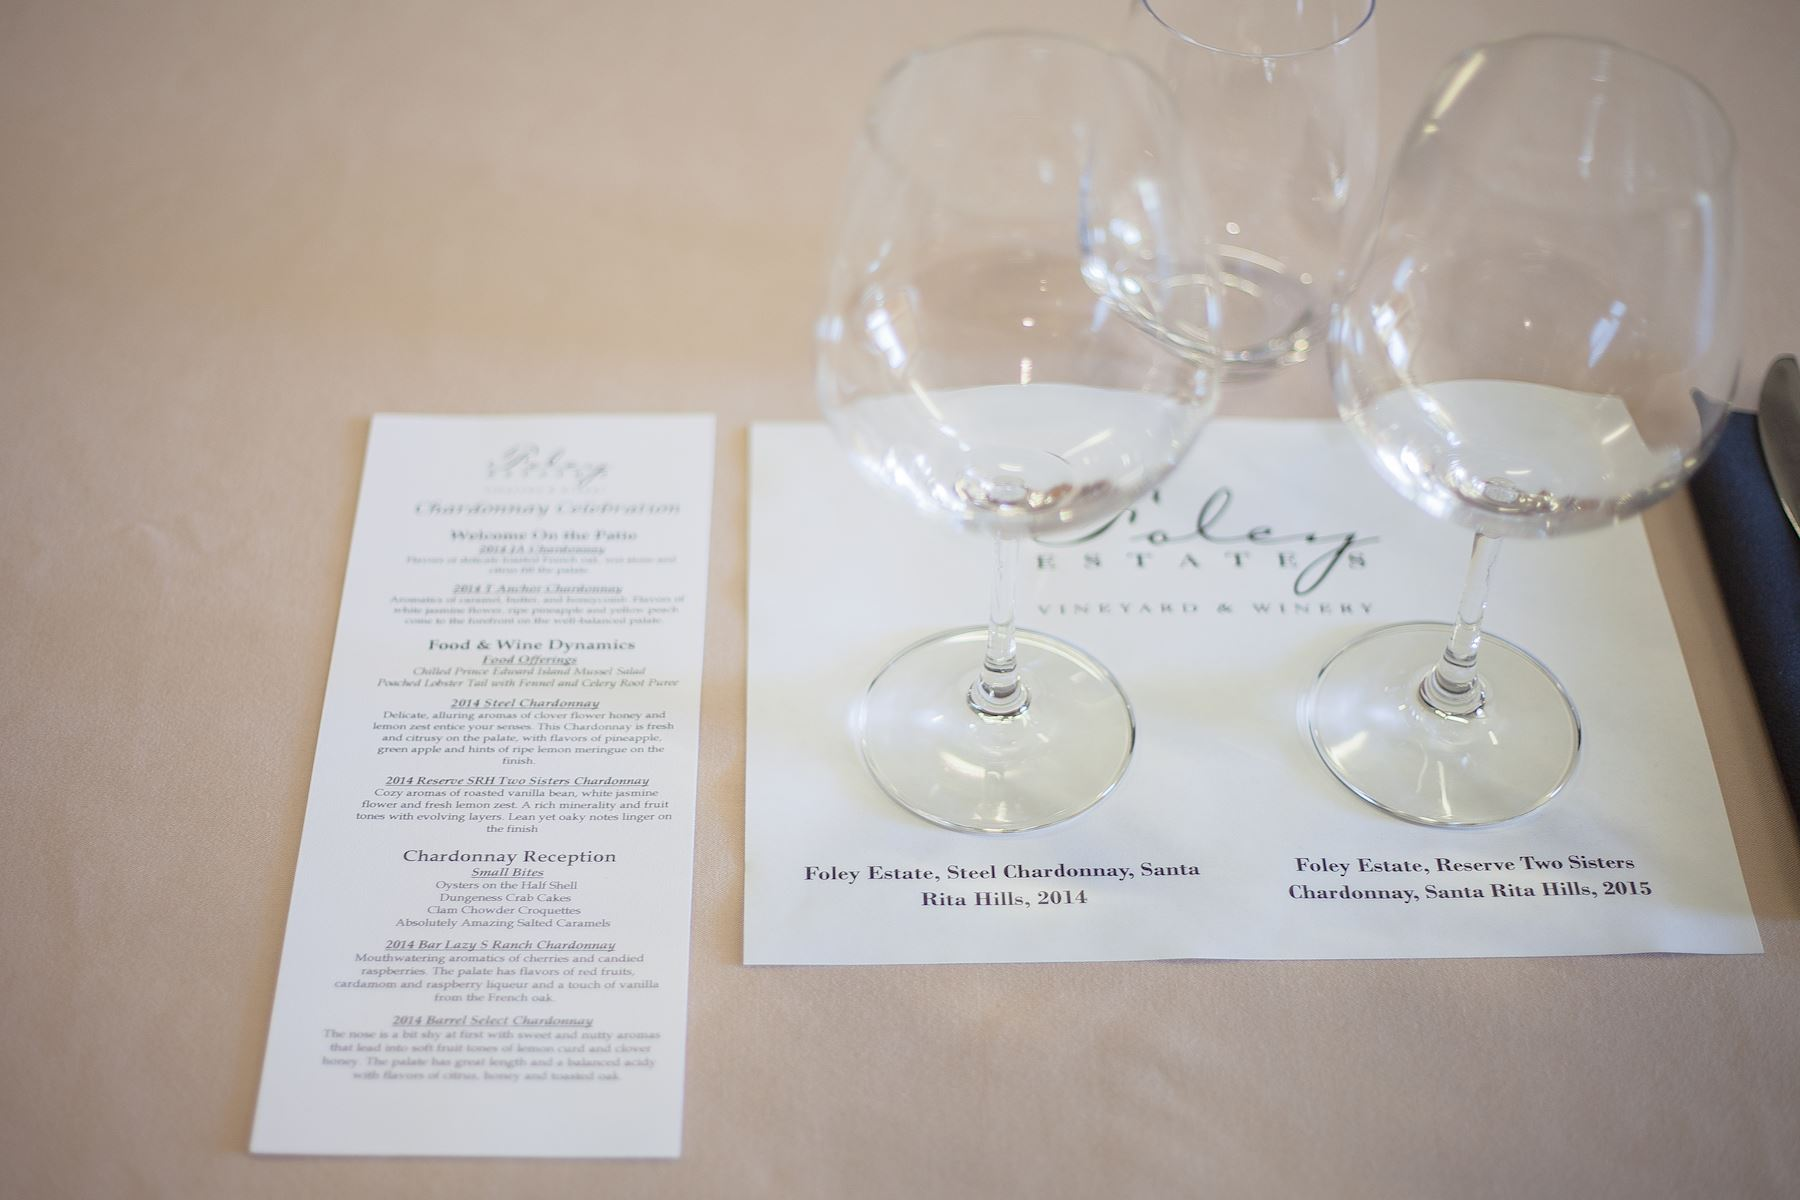 Foley Estate Chardonnay wine tasting